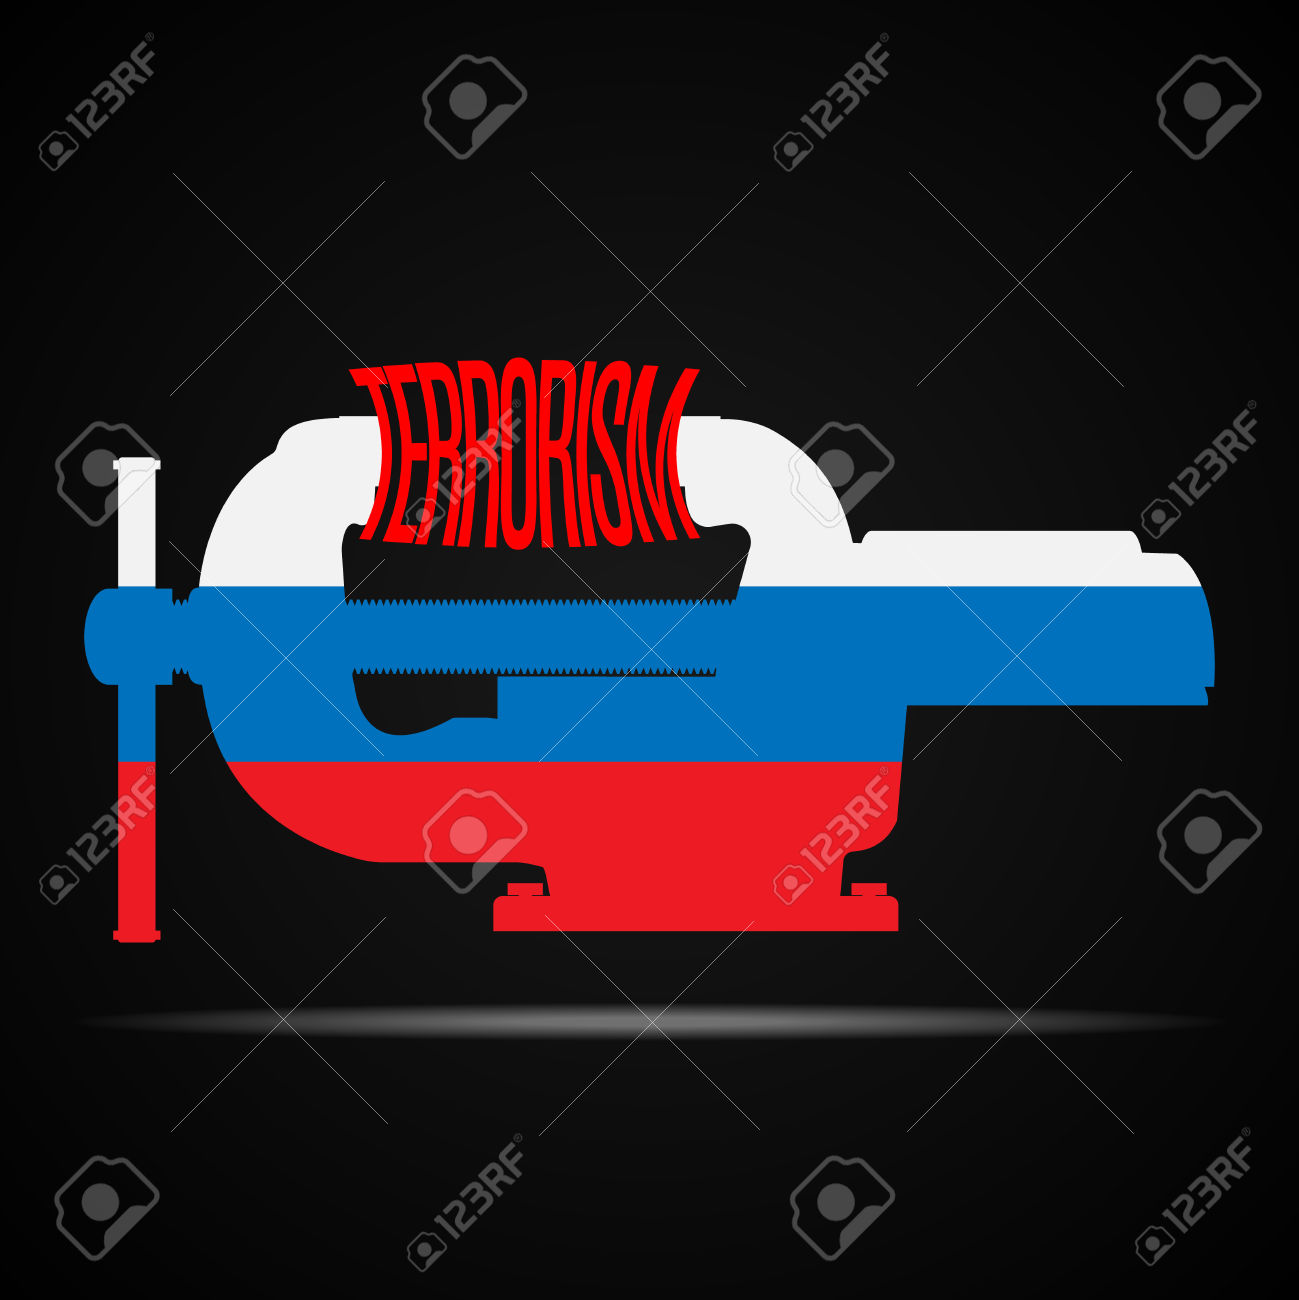 Vices In The Colors Of Russian Flag Crush The Word Terrorism.